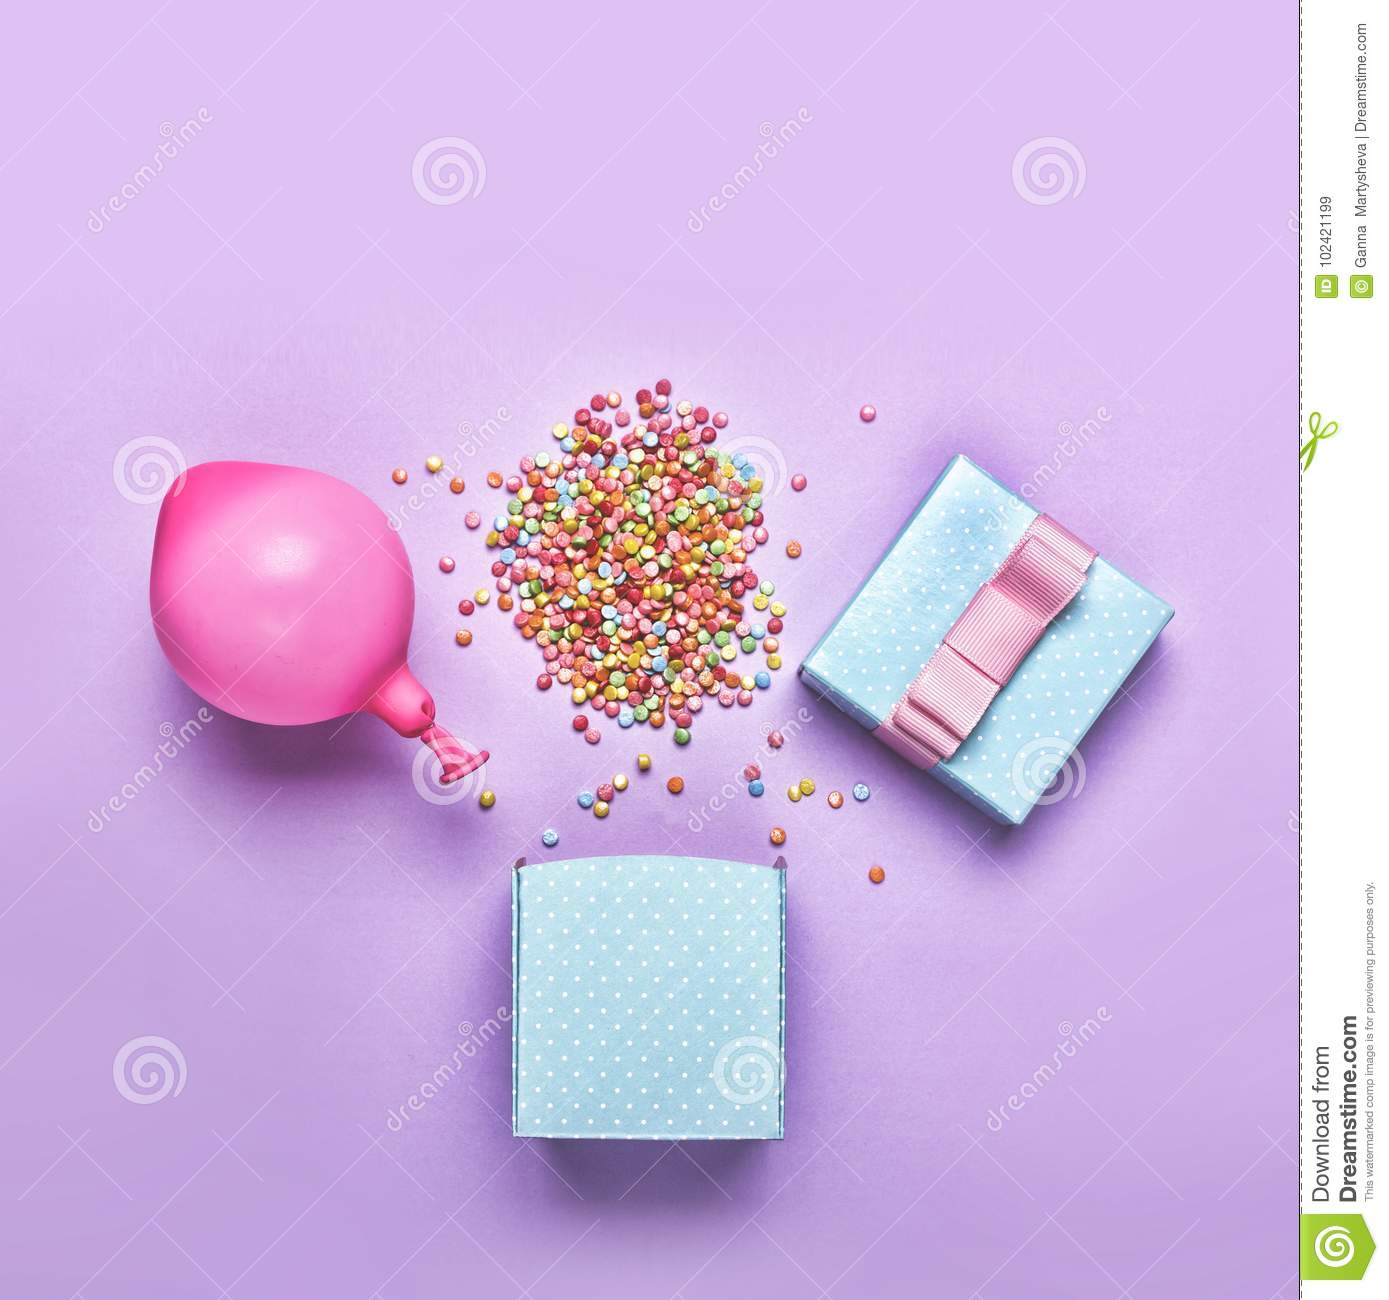 Flat lay.minimalism style, Blue gift box with various confetti parties, balloons, decorations on a green background. Colorful holi